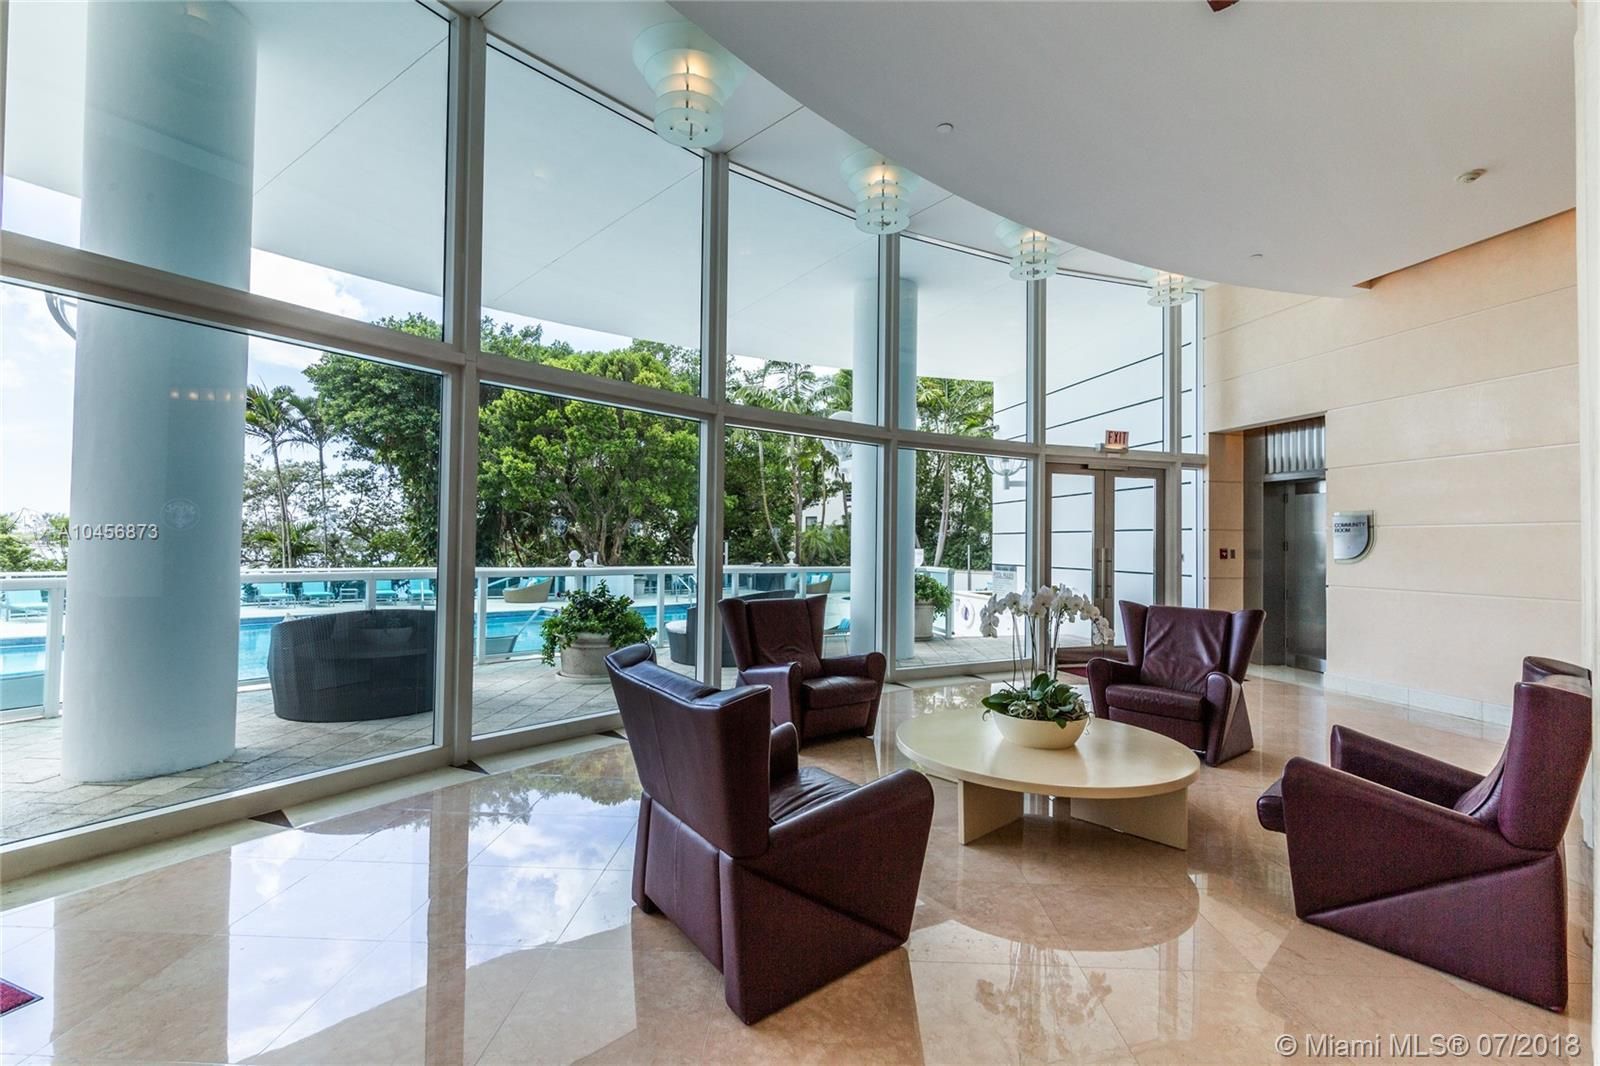 2127 Brickell Avenue, Miami, FL 33129, Bristol Tower Condominium #1702, Brickell, Miami A10456873 image #38